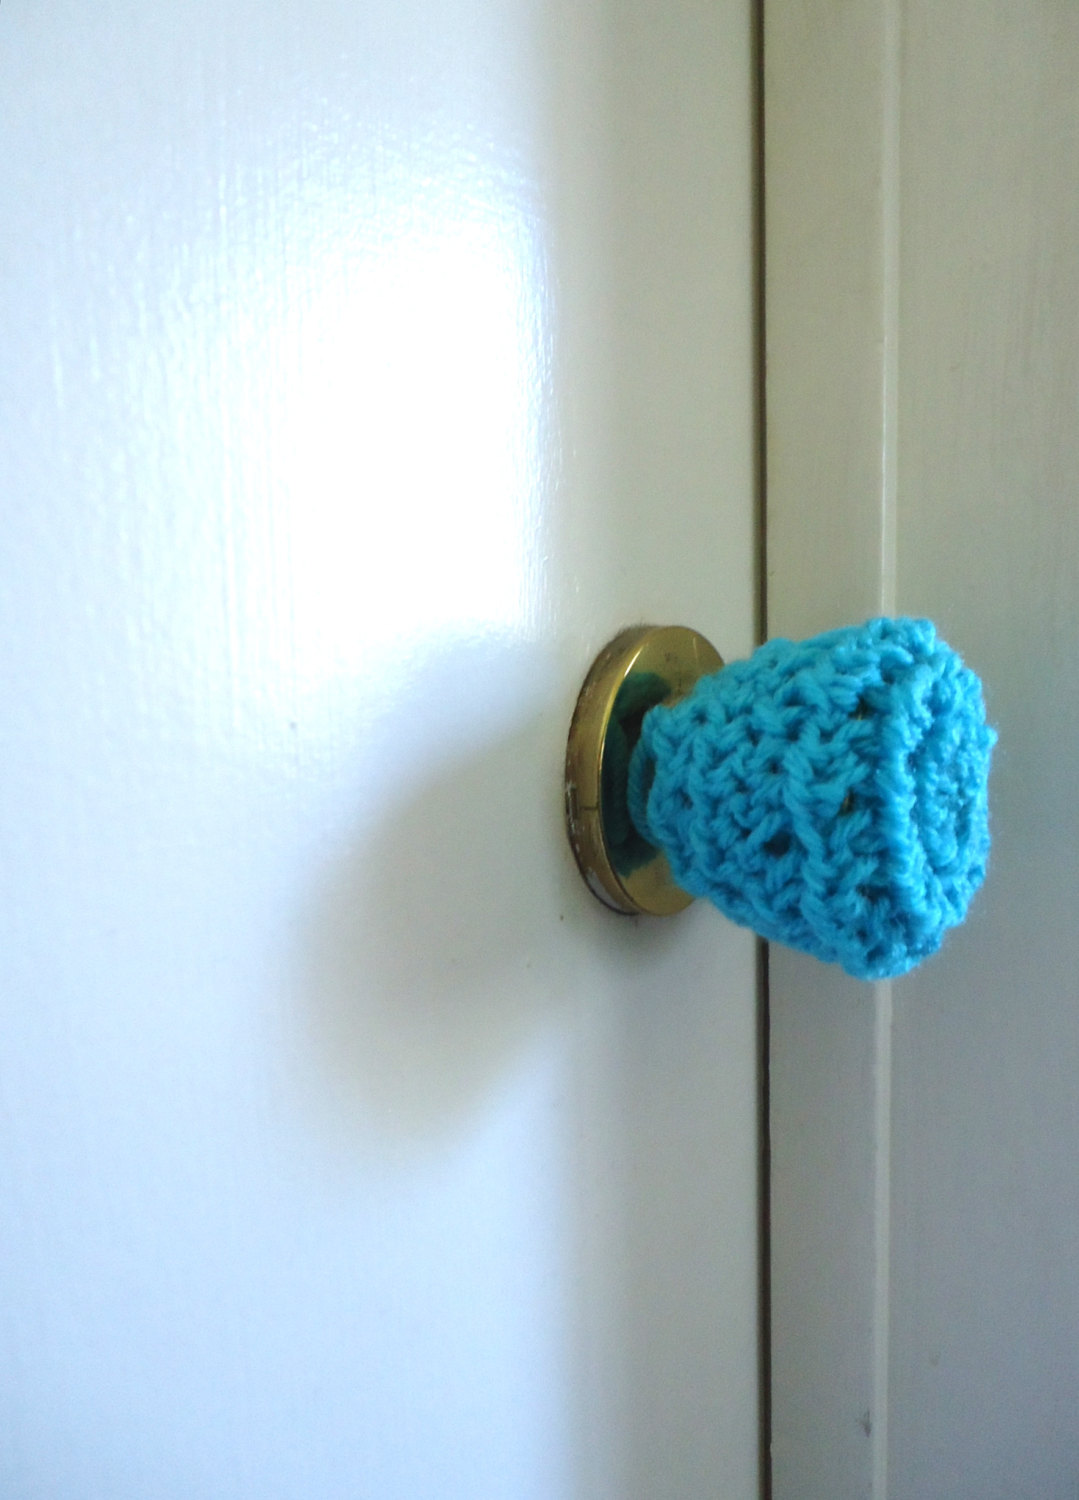 child safety door knob covers photo - 11